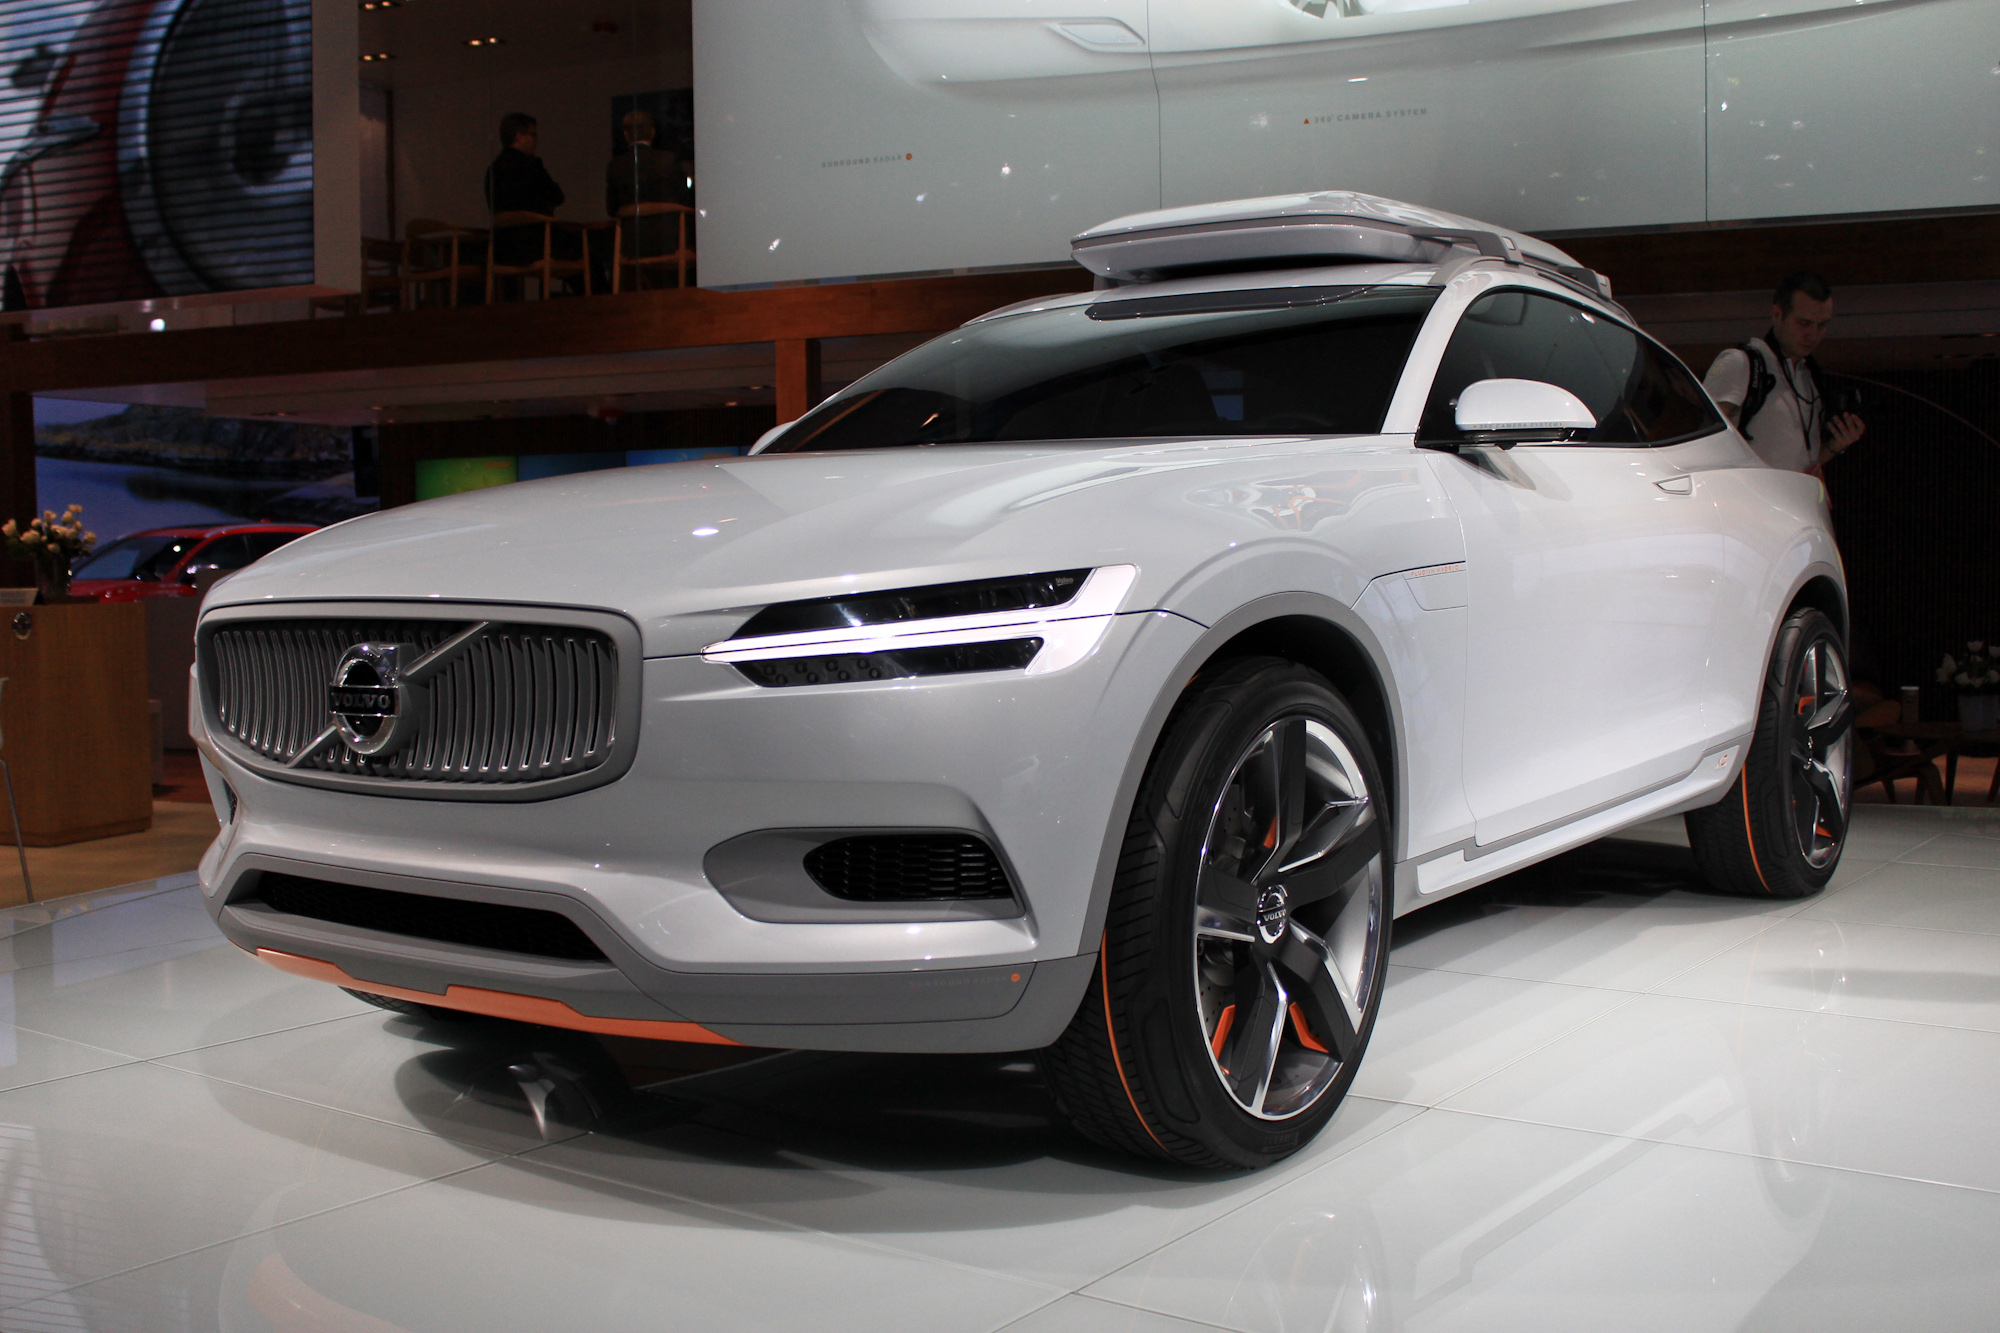 2019 Volvo Coupe Concept photo - 6